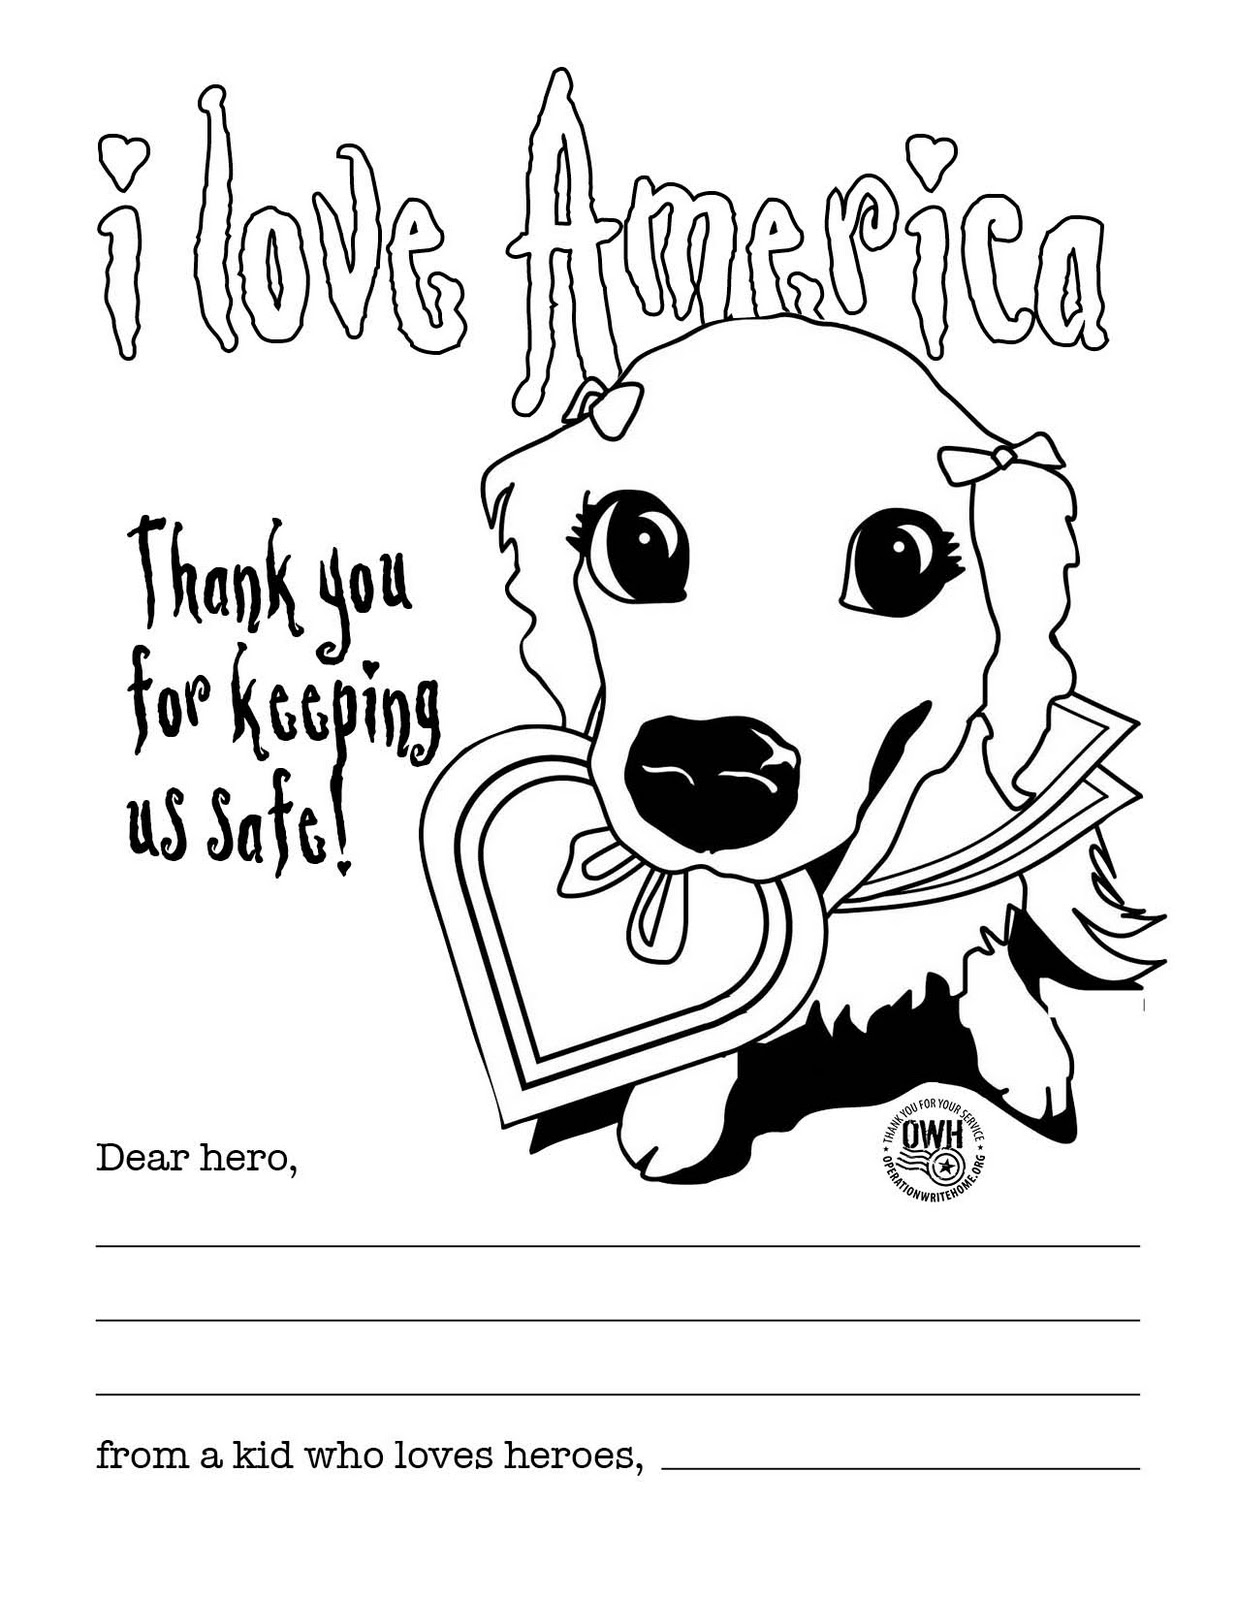 Printable coloring pages guinea pigs - Coloring Pages Of Guinea Pigs Homefront Blog Owh Coloring Pages The Whole Collection